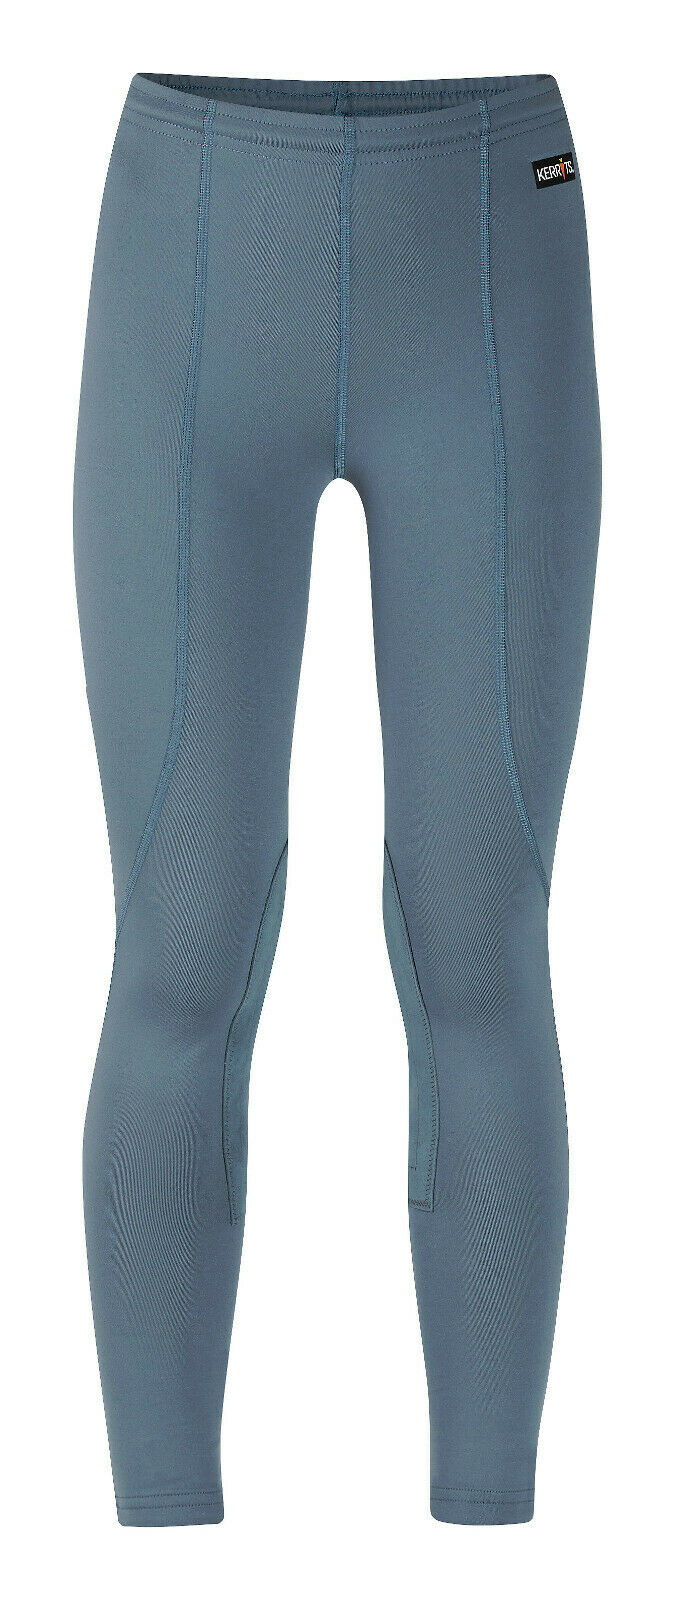 New Kerrits Kids Performance Tight - Jade - Various Sizes